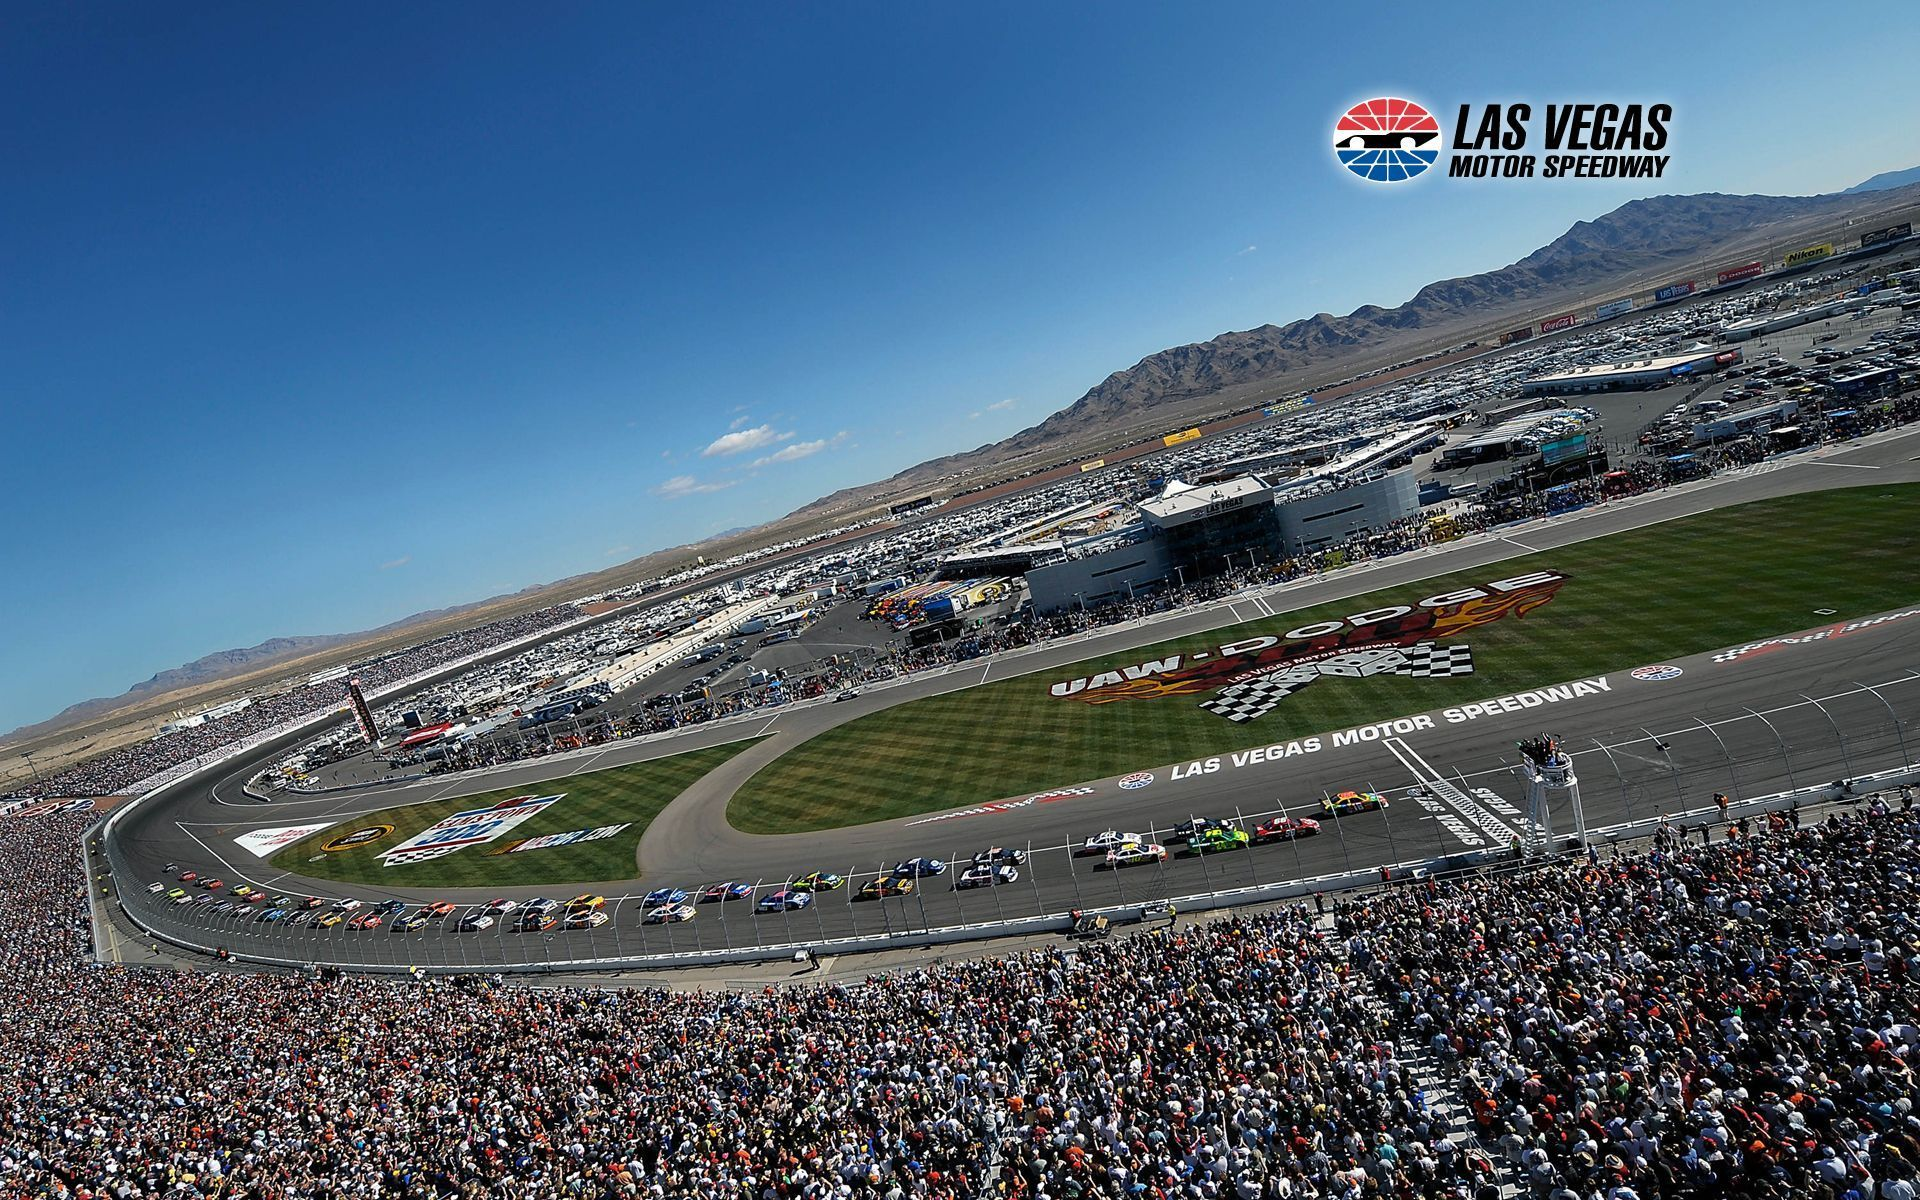 Speedway wallpapers photos and desktop backgrounds up to for Las vegas motor speedway